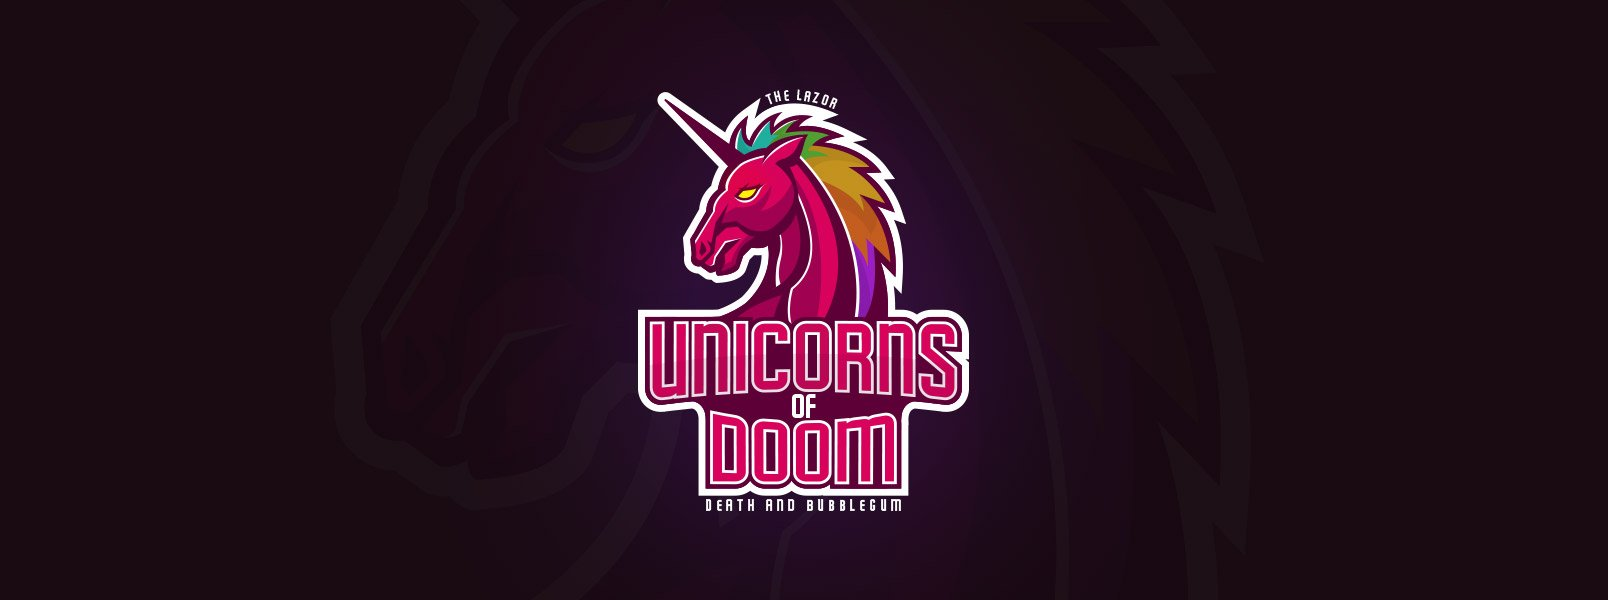 'Unicorns of Doom' E-Sport